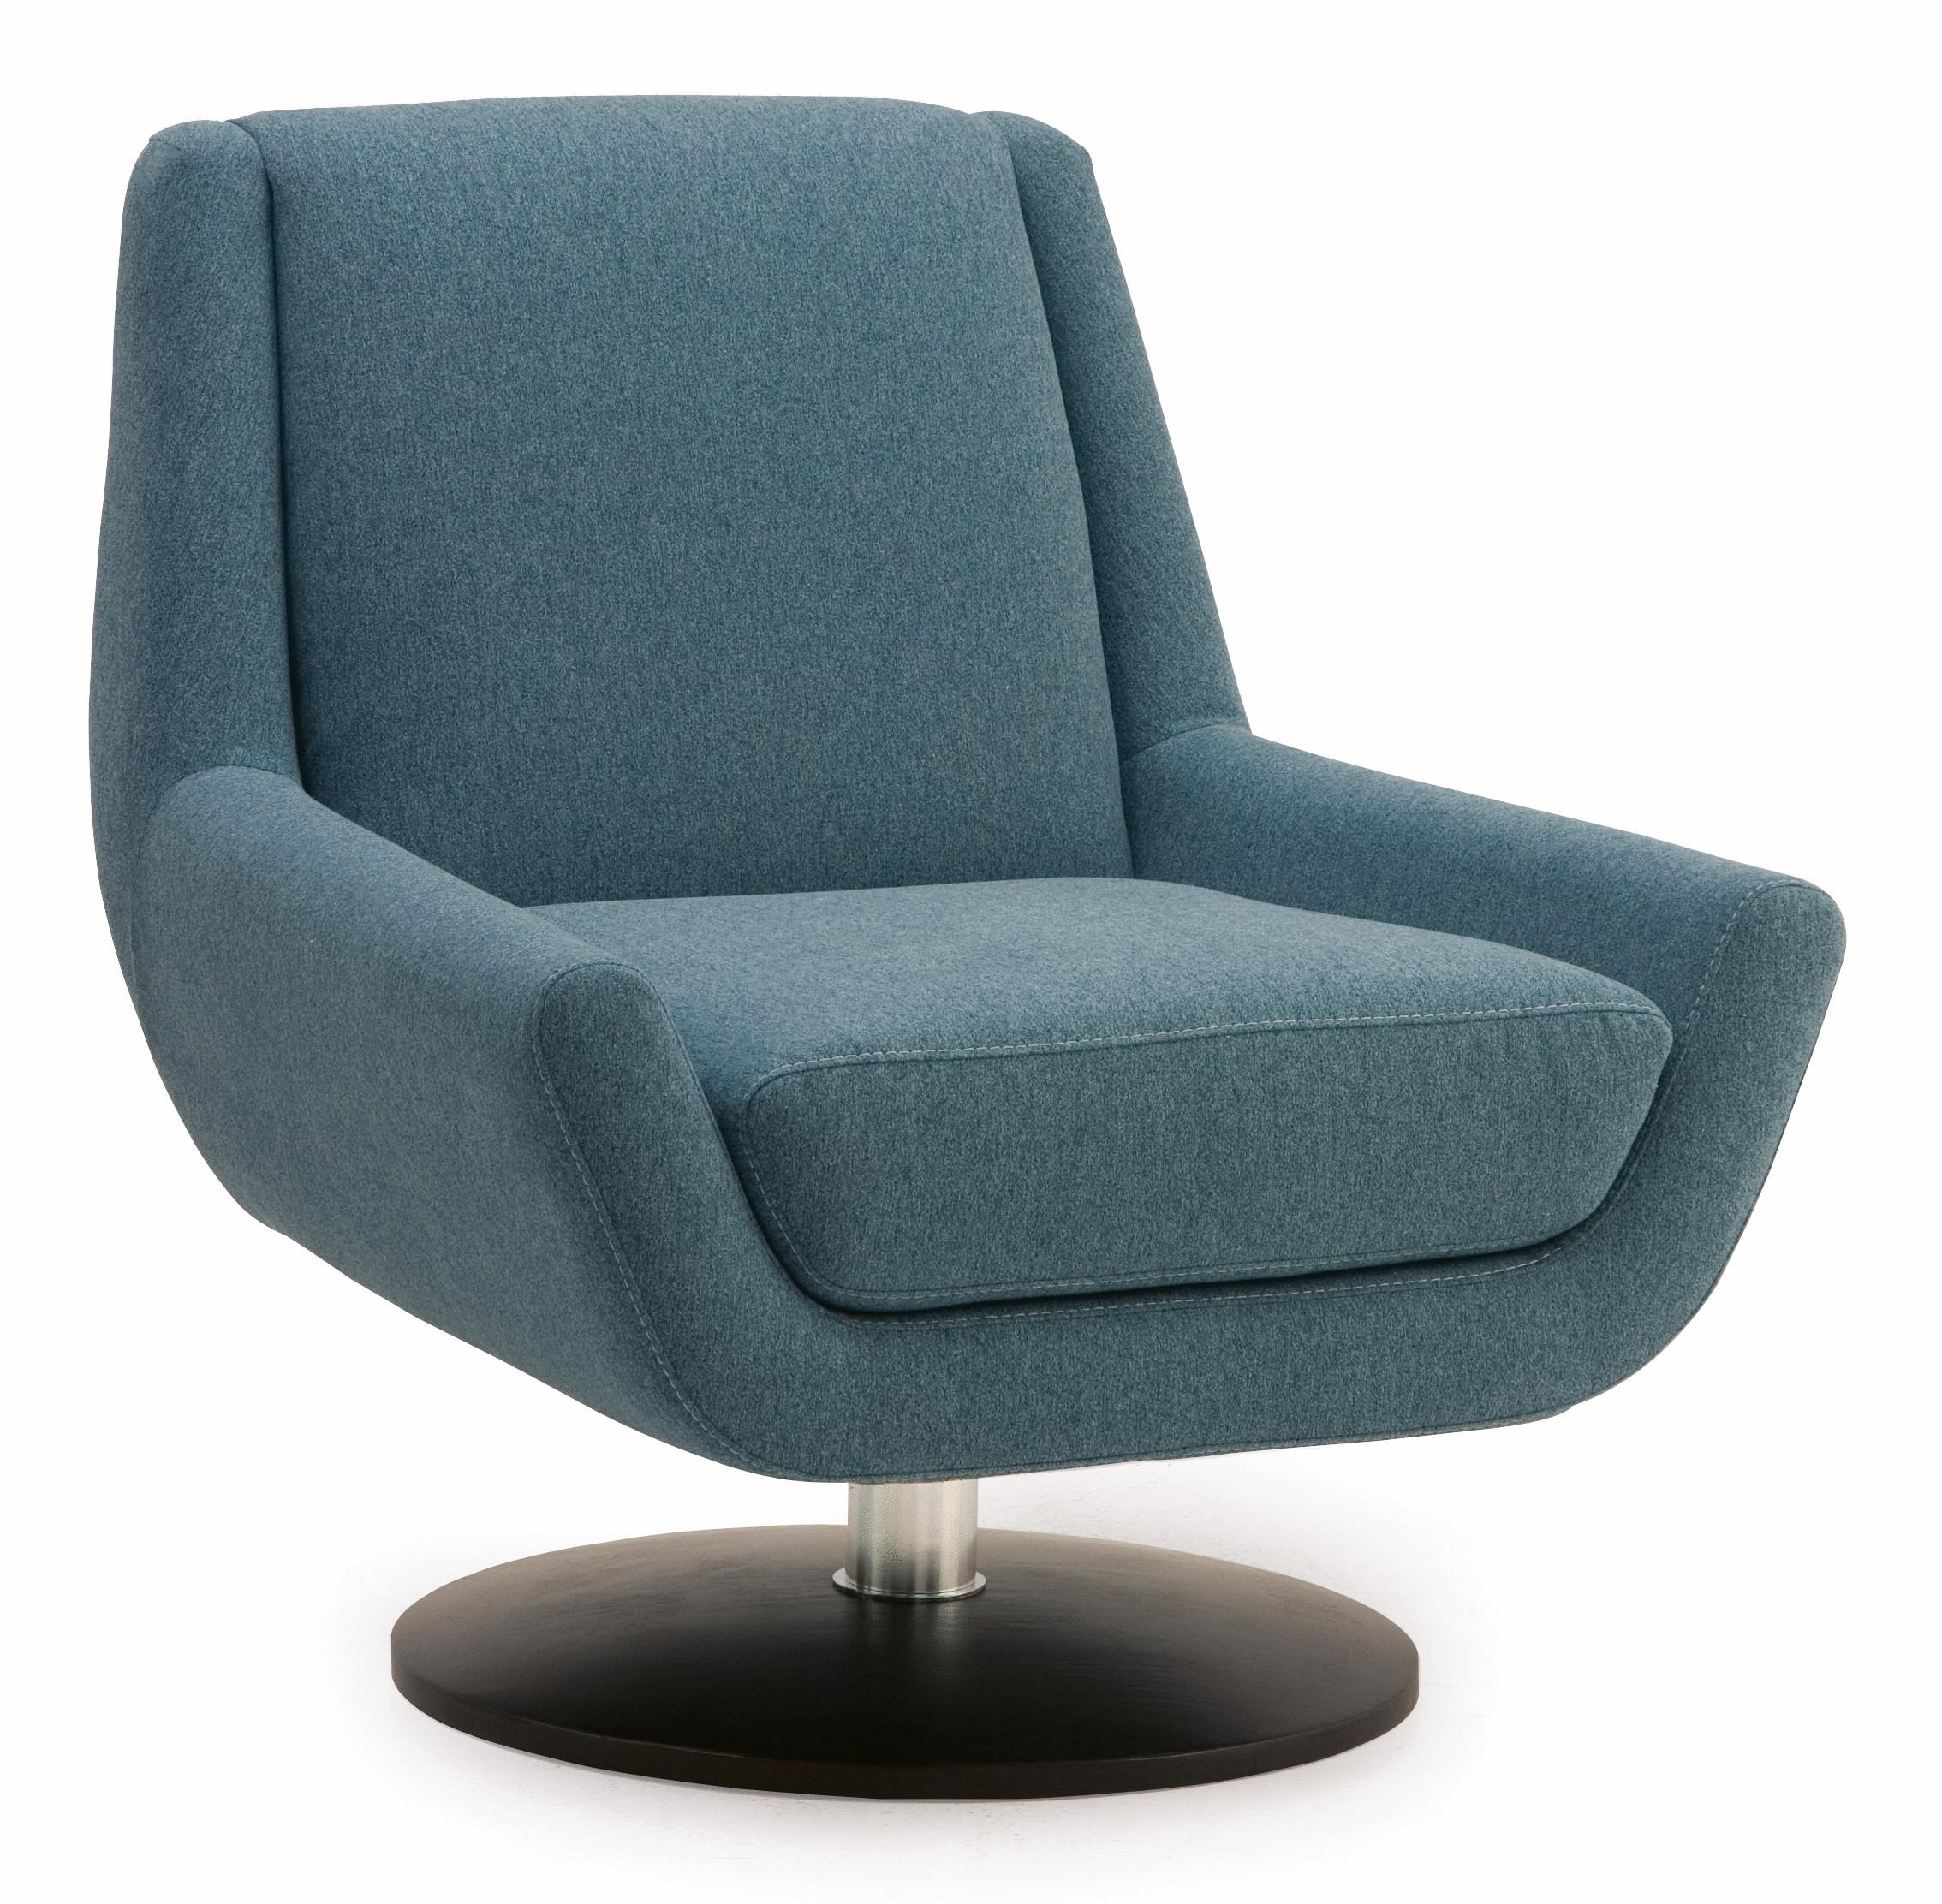 Palliser Plato 70017 96 Contemporary Swivel Chair With